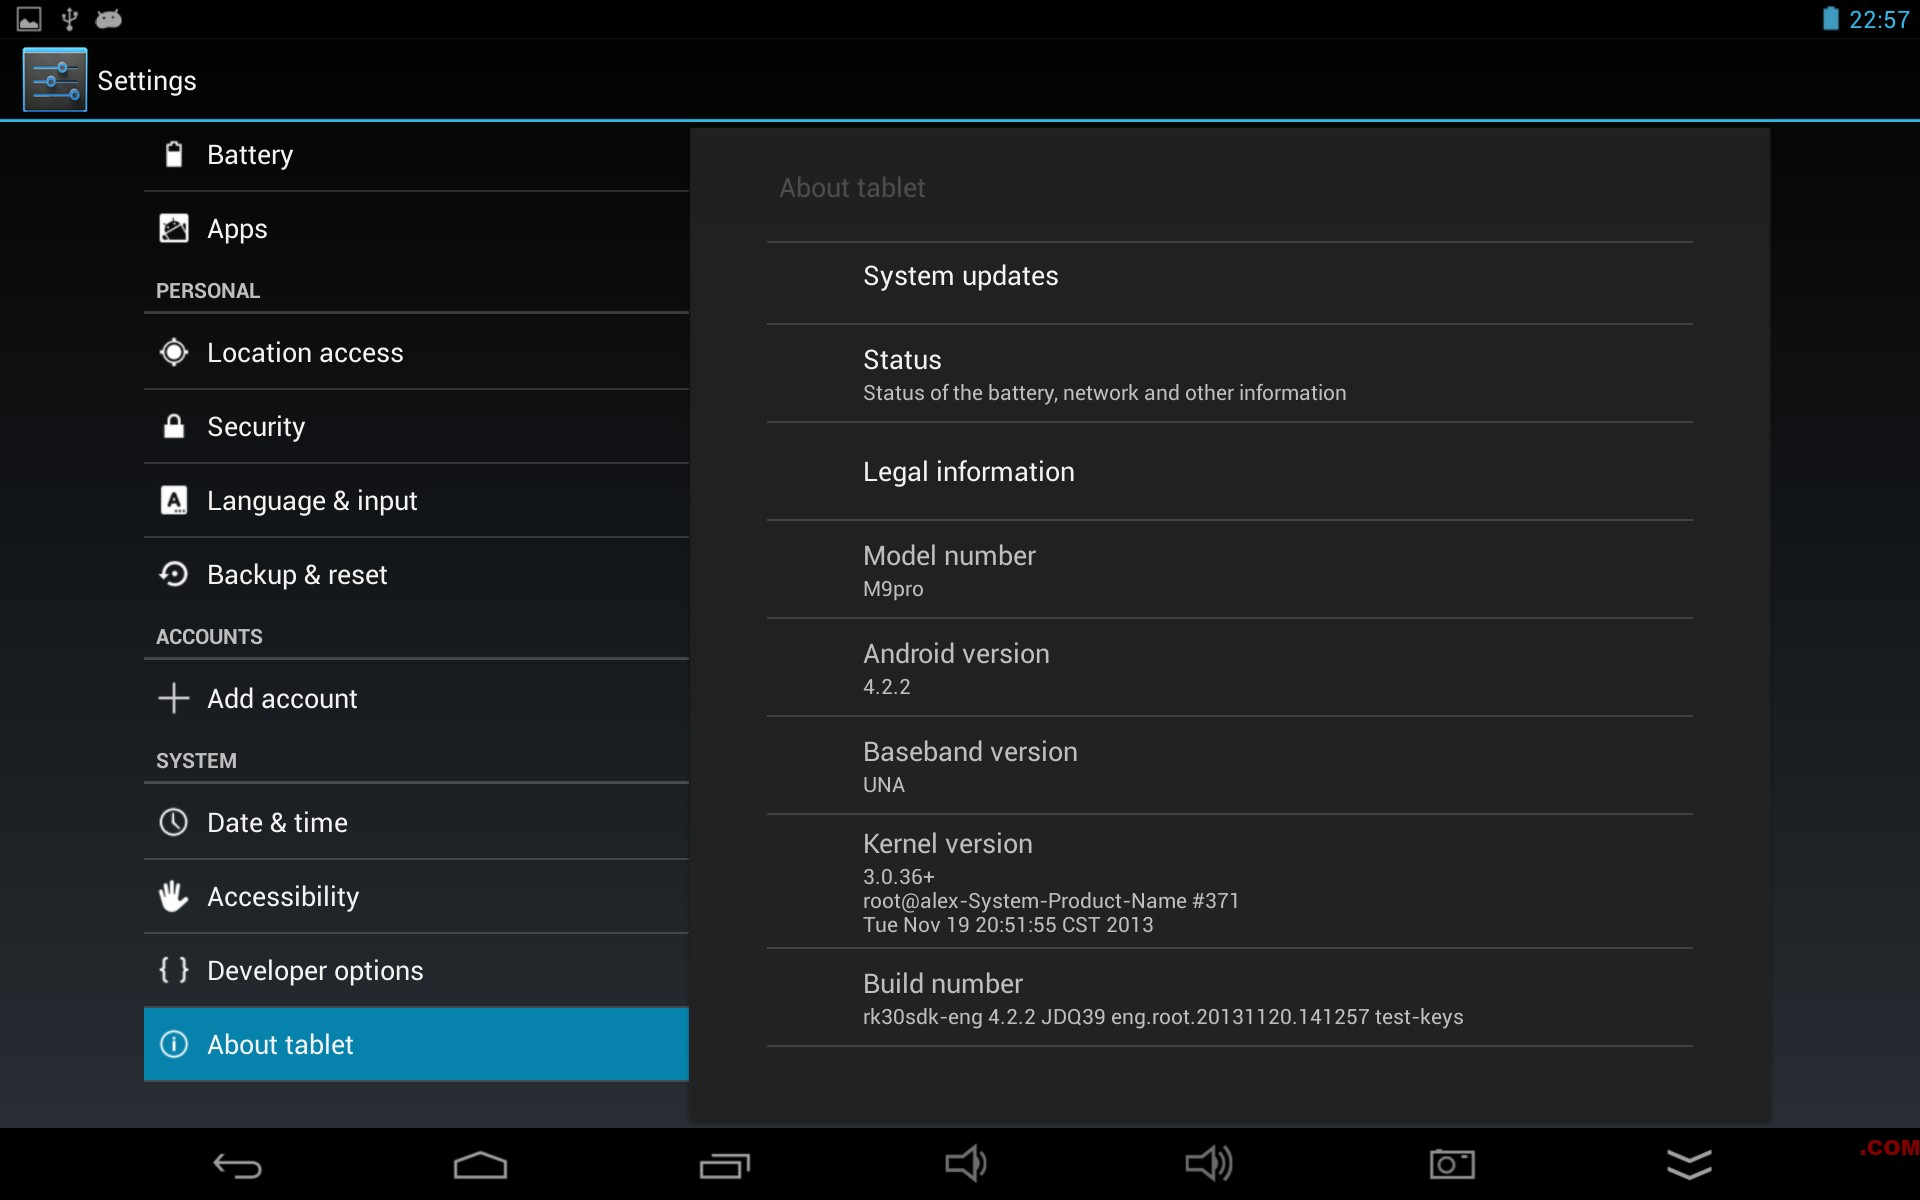 Pipo_M9_pro_firmware_20131120_setting_about.png